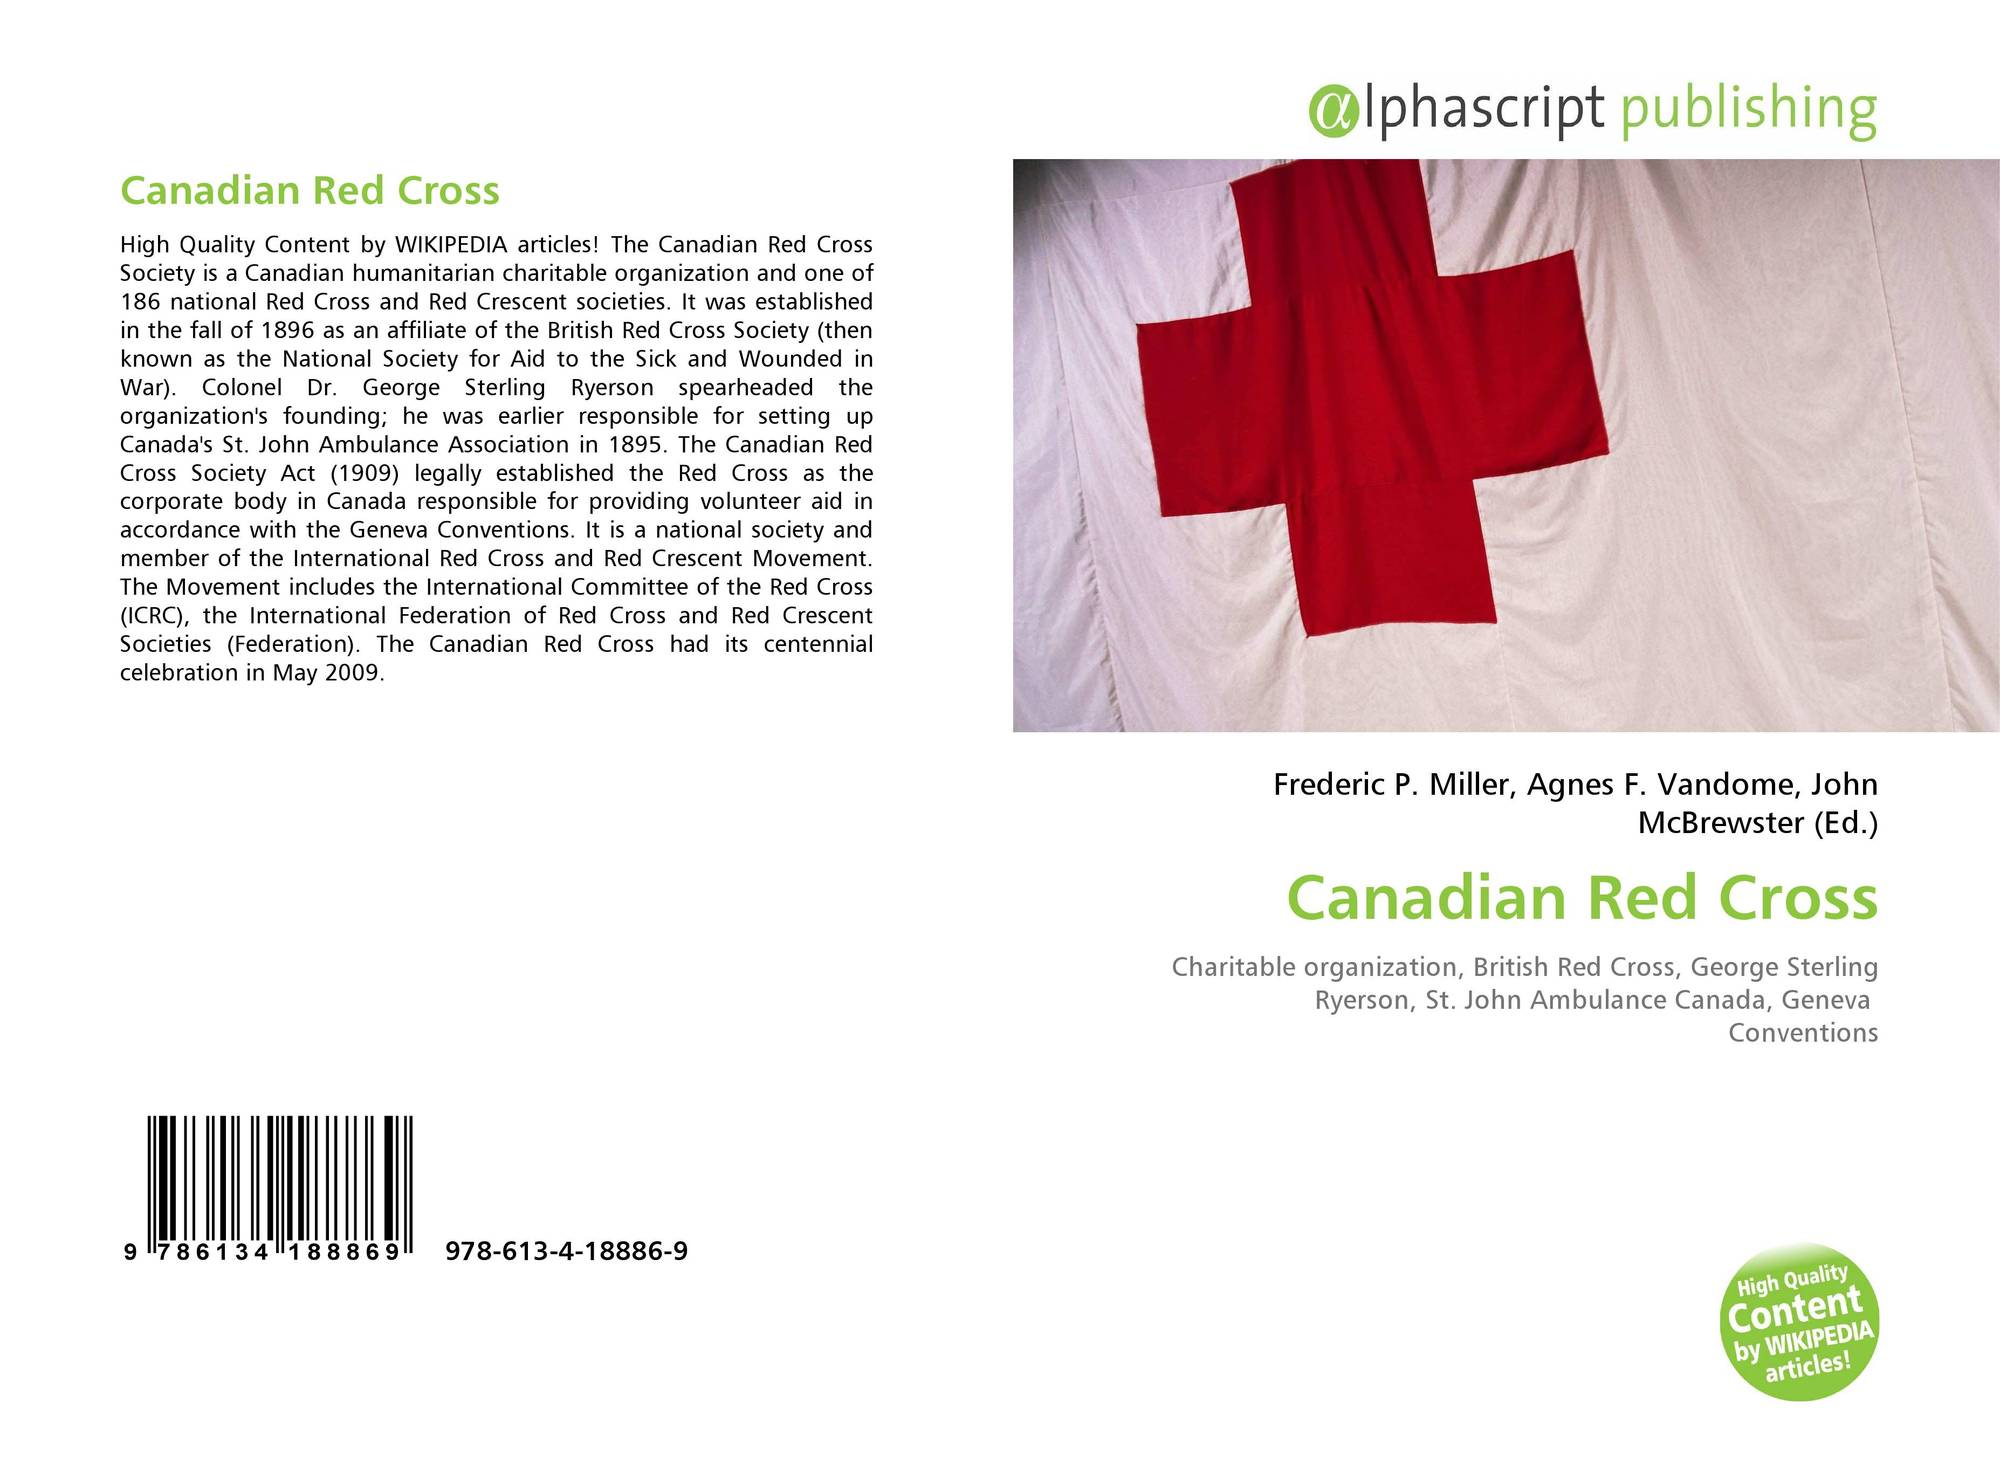 Canadian Red Cross 978 613 4 18886 9 6134188867 9786134188869